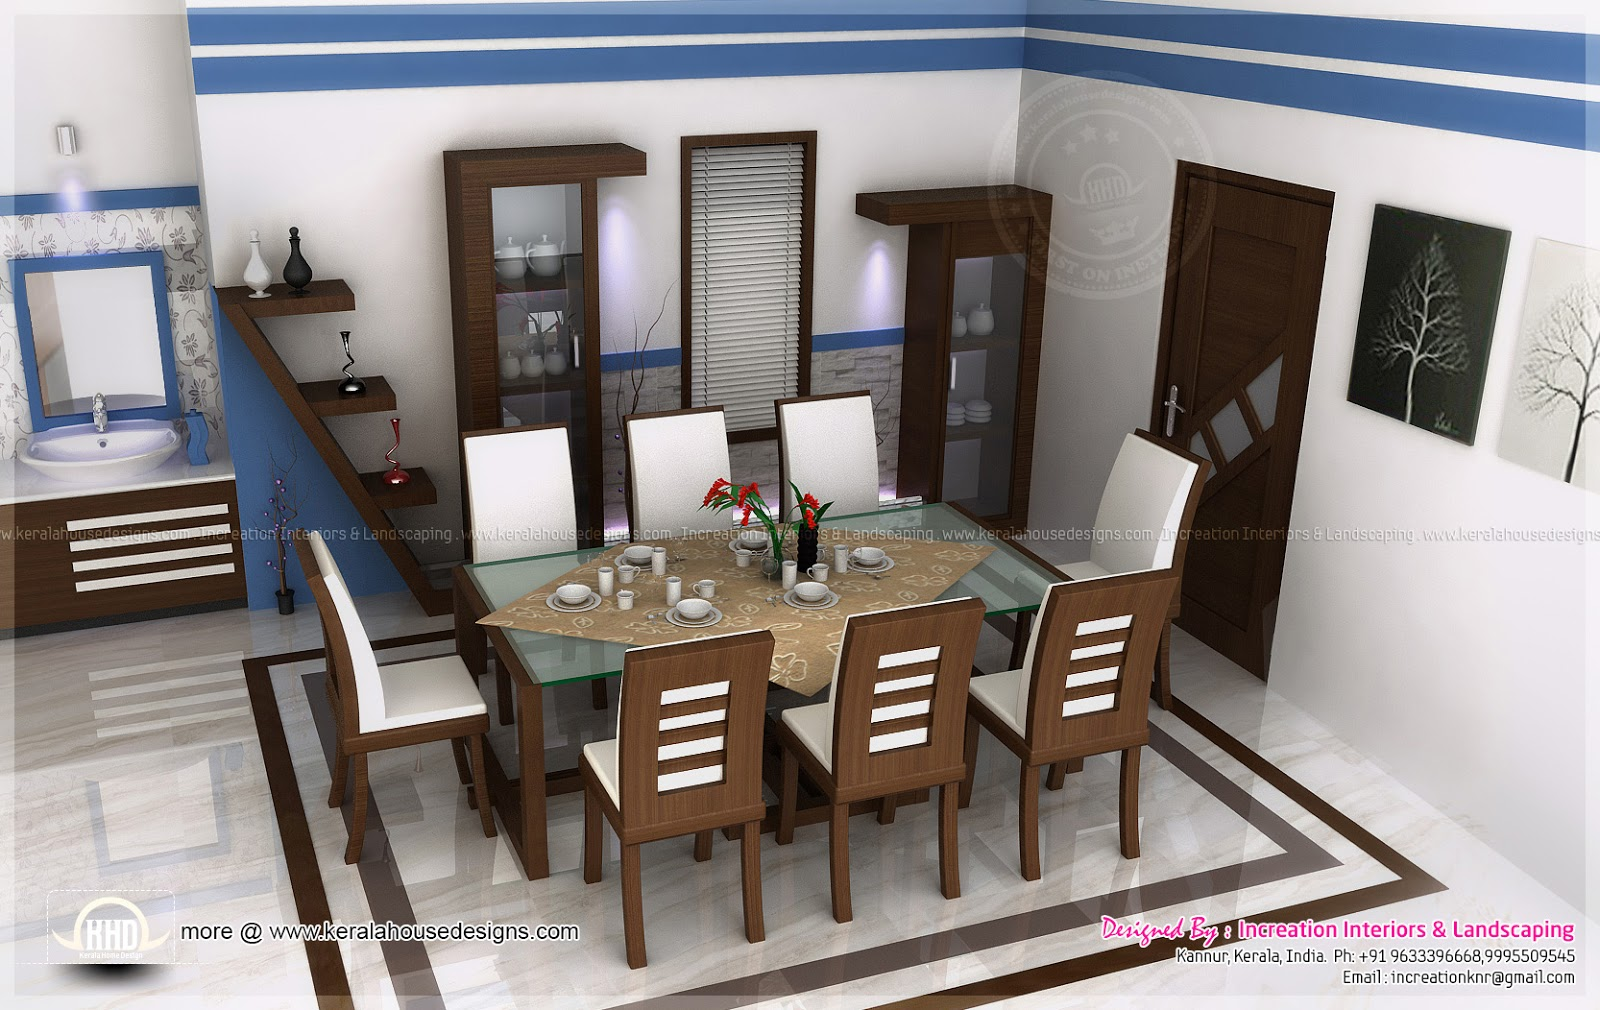 House interior ideas in 3d rendering kerala home design for House designs interior